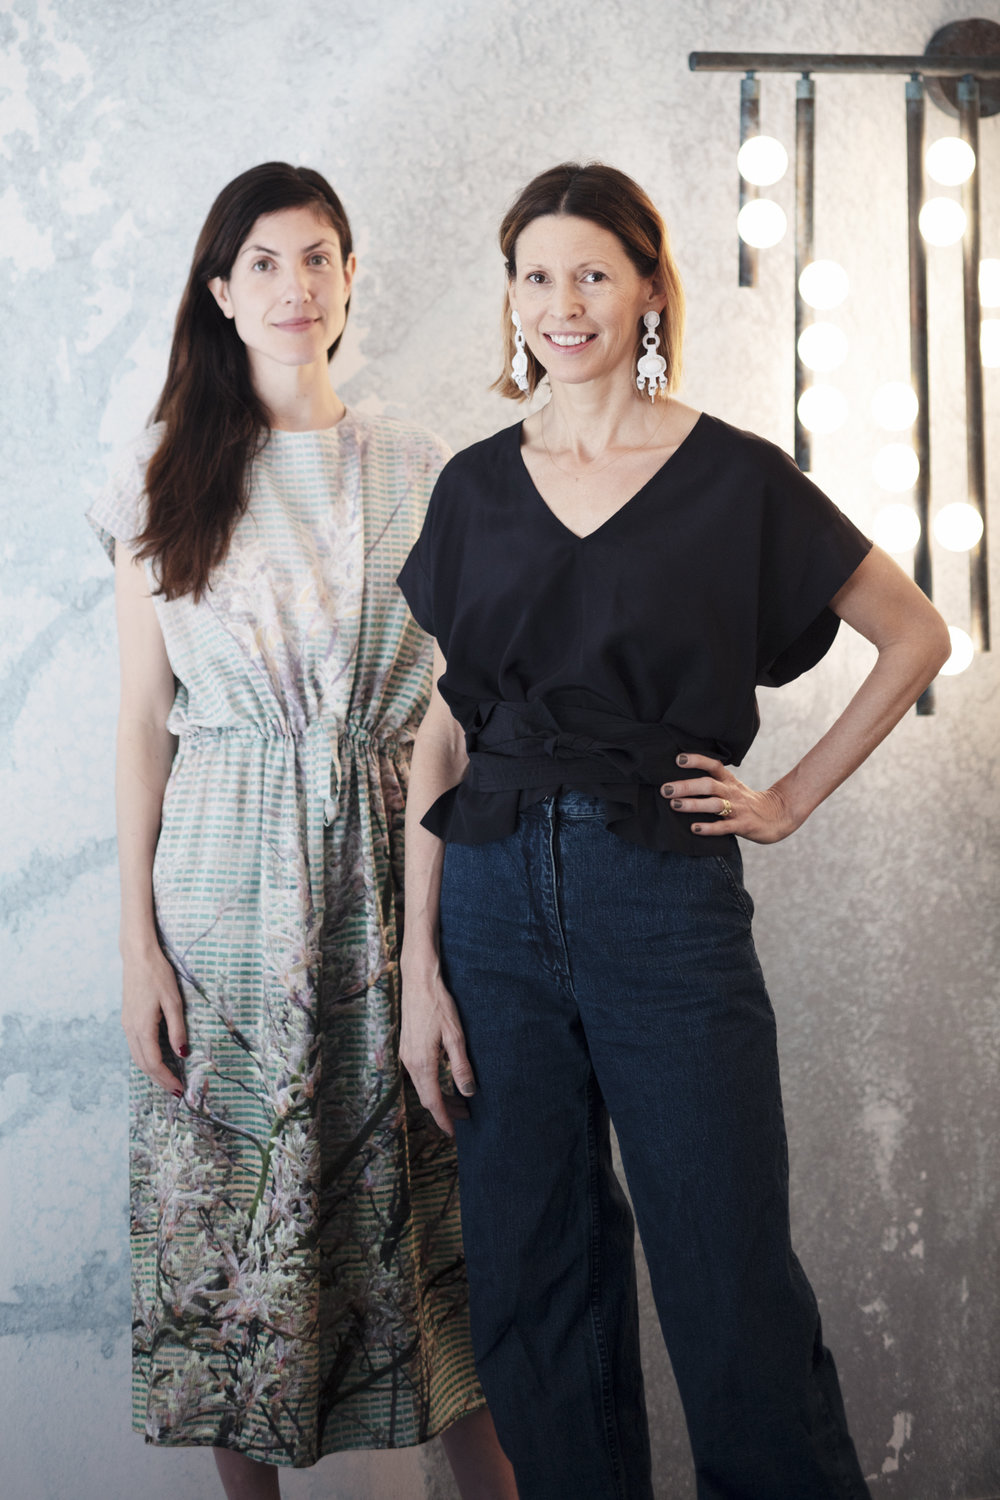 Rachel Cope of Calico Wallpaper (Left) and Lindsey Adelman.